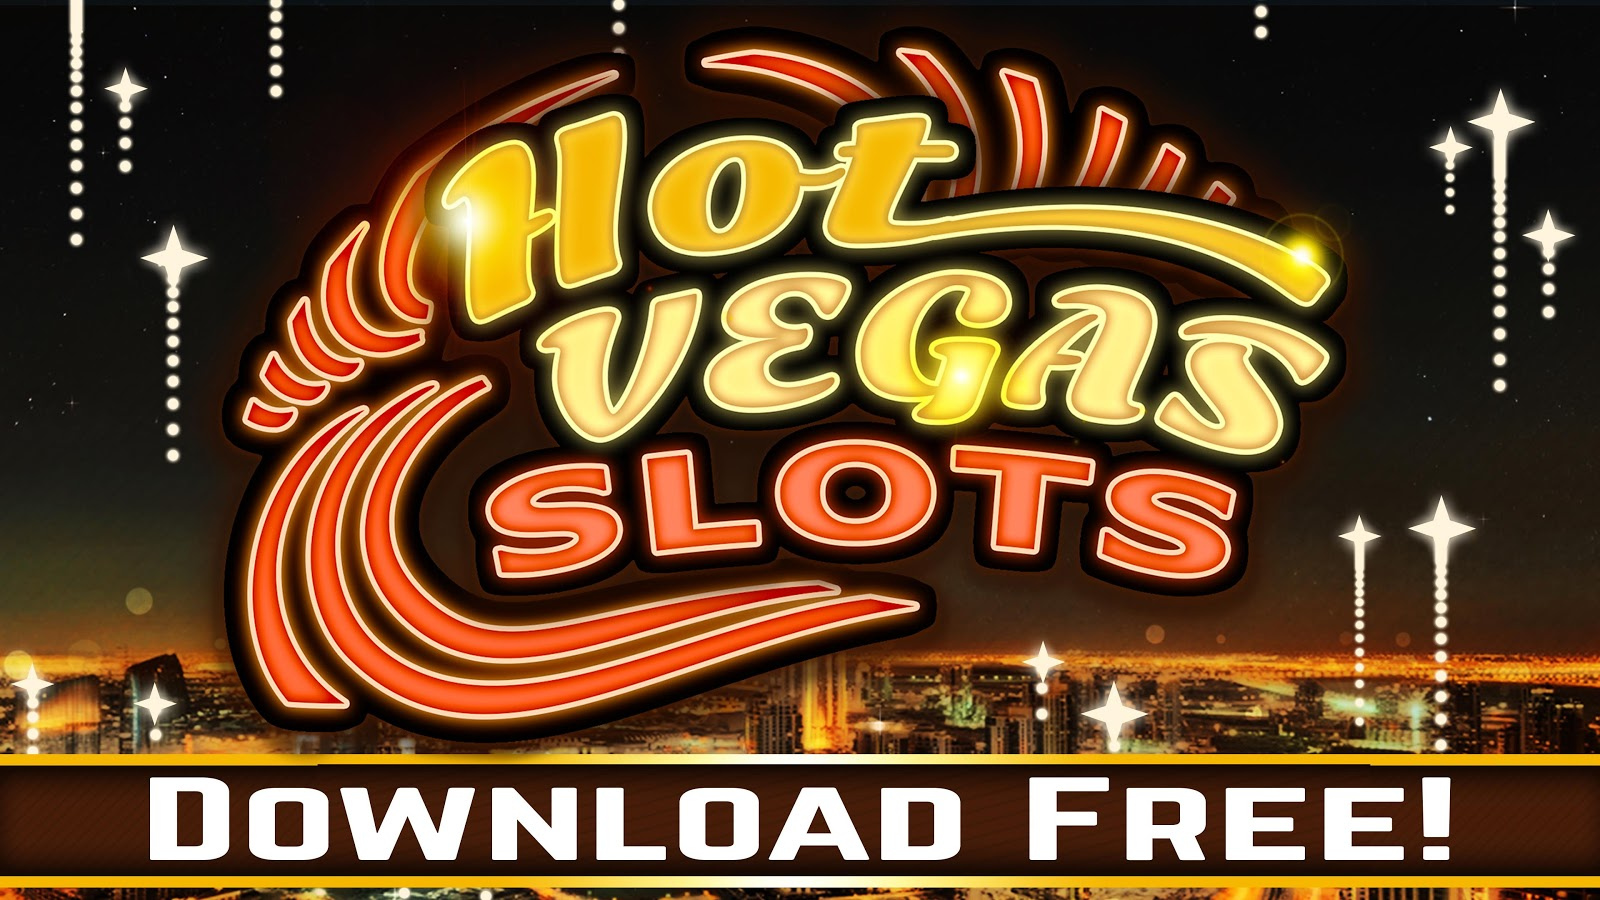 Showers Slots - Try it Online for Free or Real Money